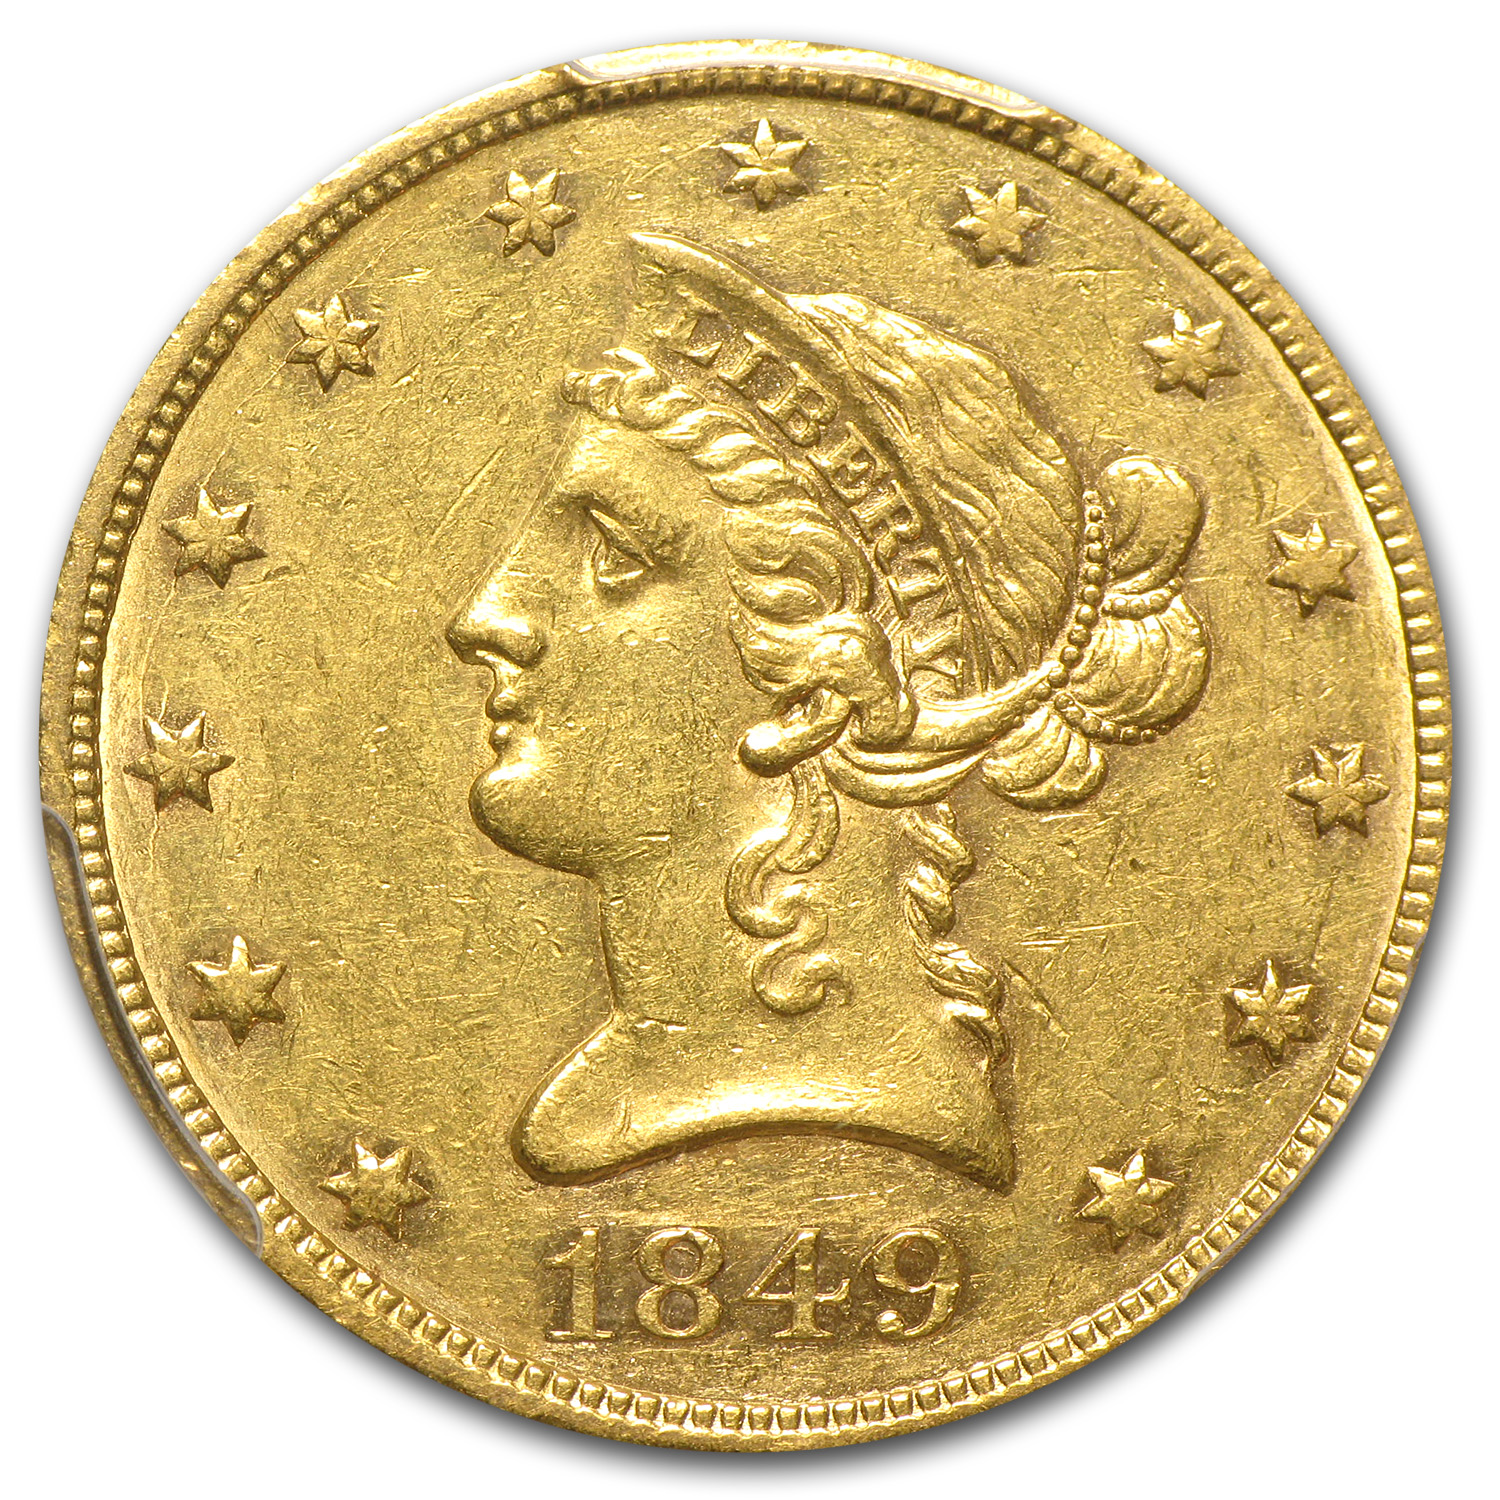 1849 $10 Liberty Gold Eagle AU-53 PCGS